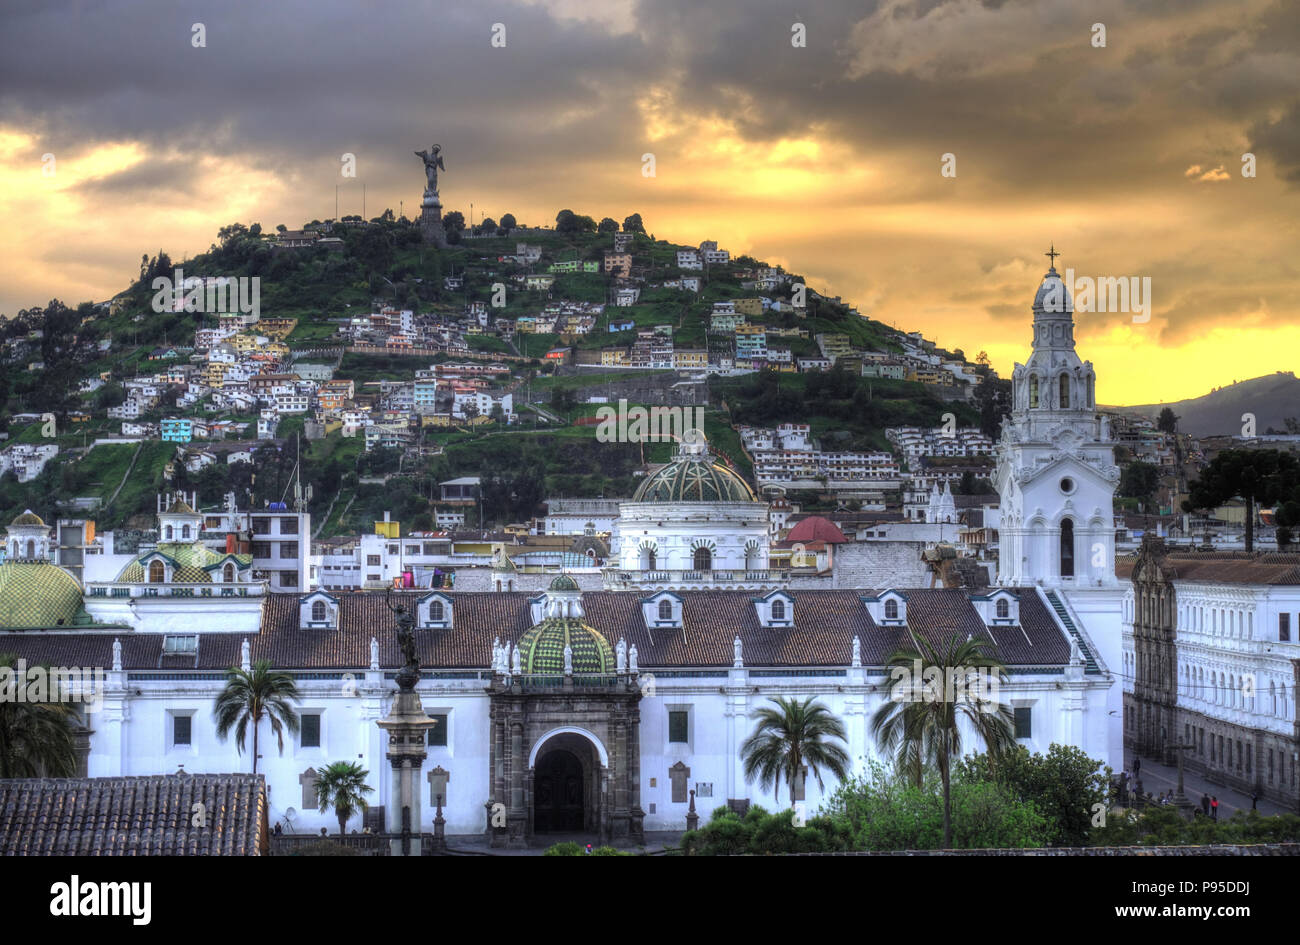 Quito, Capital of Ecuador - Stock Image